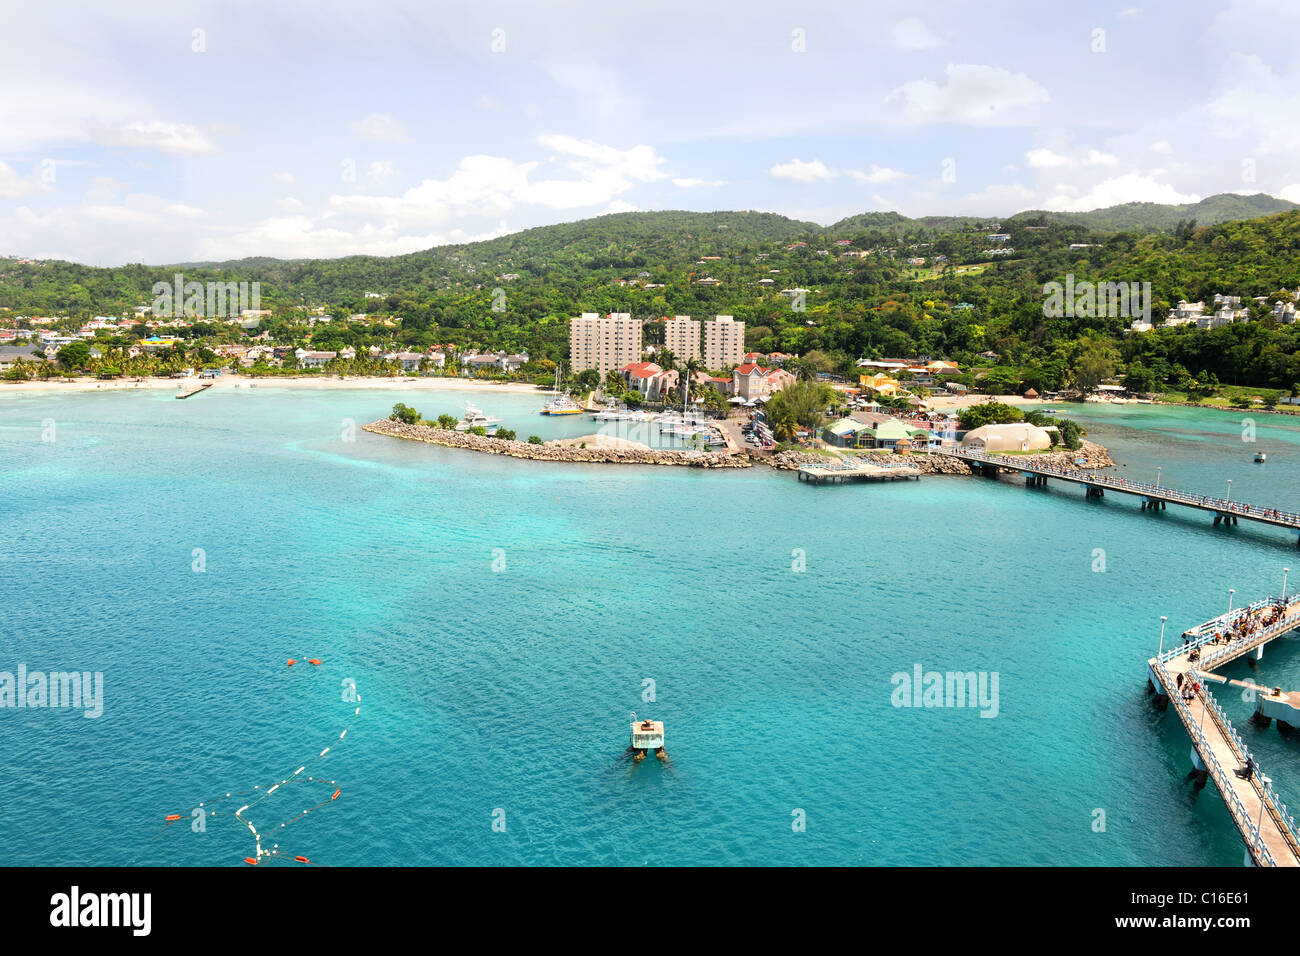 Ocho Rios in Jamaica during bright day - Stock Image